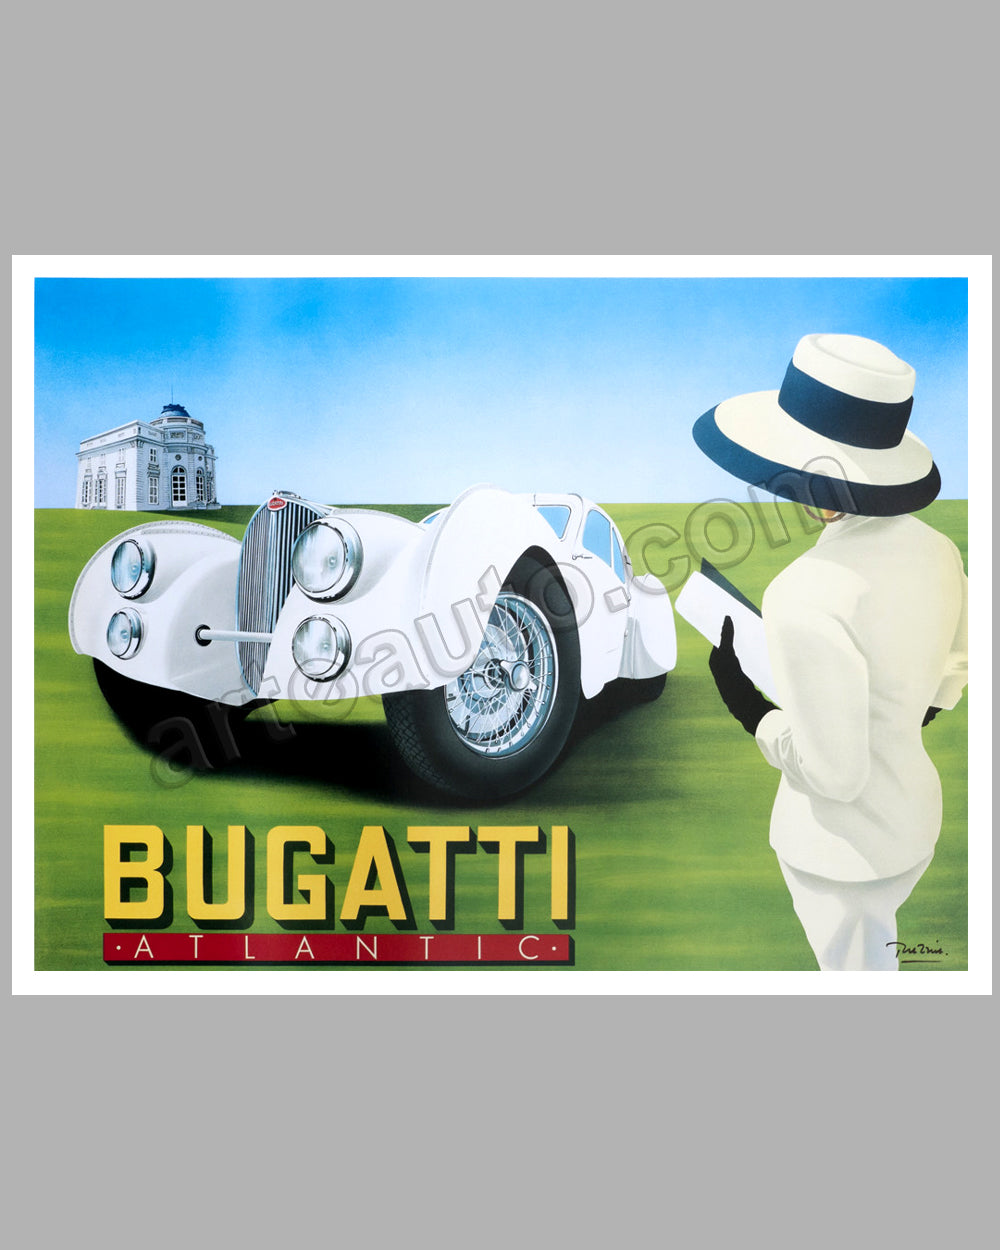 Bugatti Atlantic large poster by Razzia